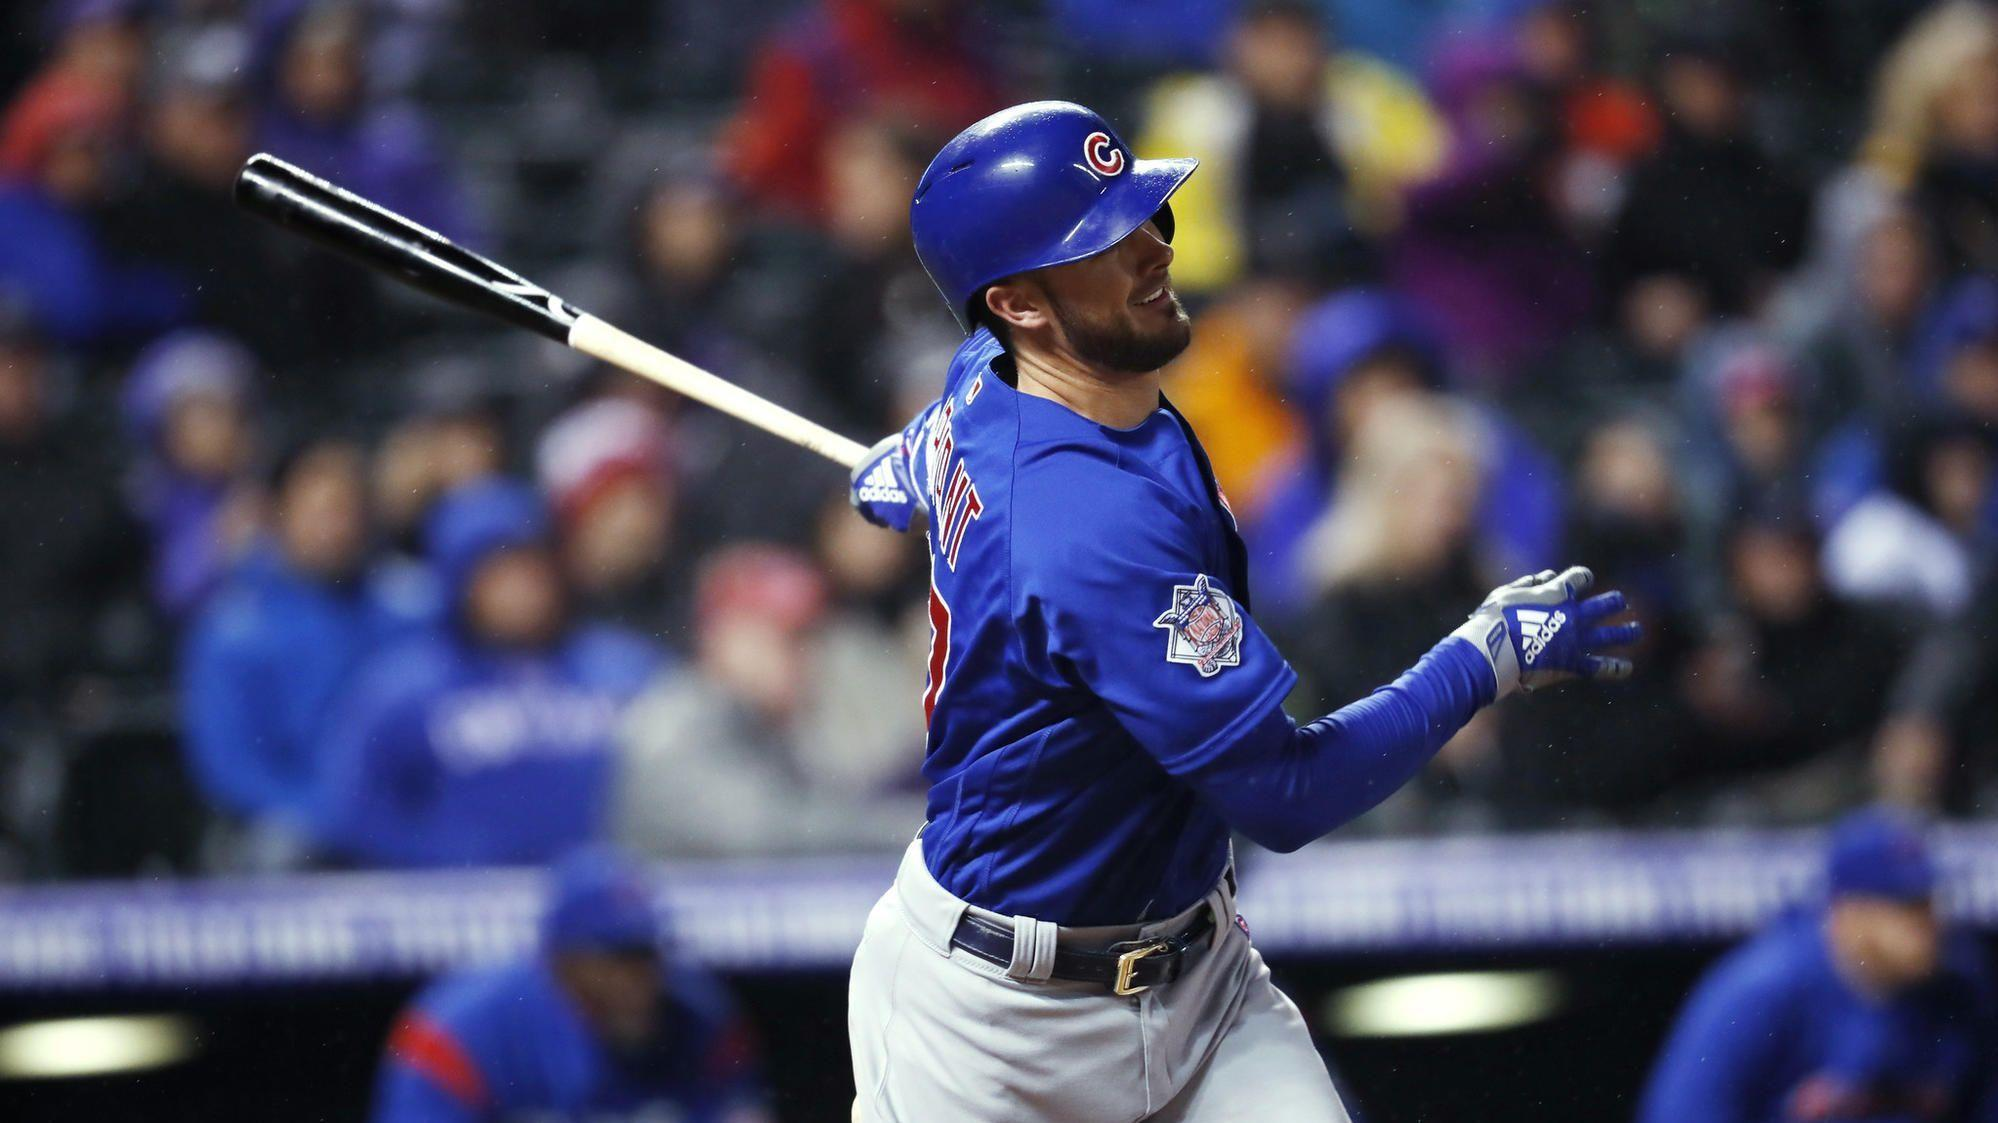 Ct-spt-cubs-kris-bryant-prefers-to-hit-third-notes-20180421